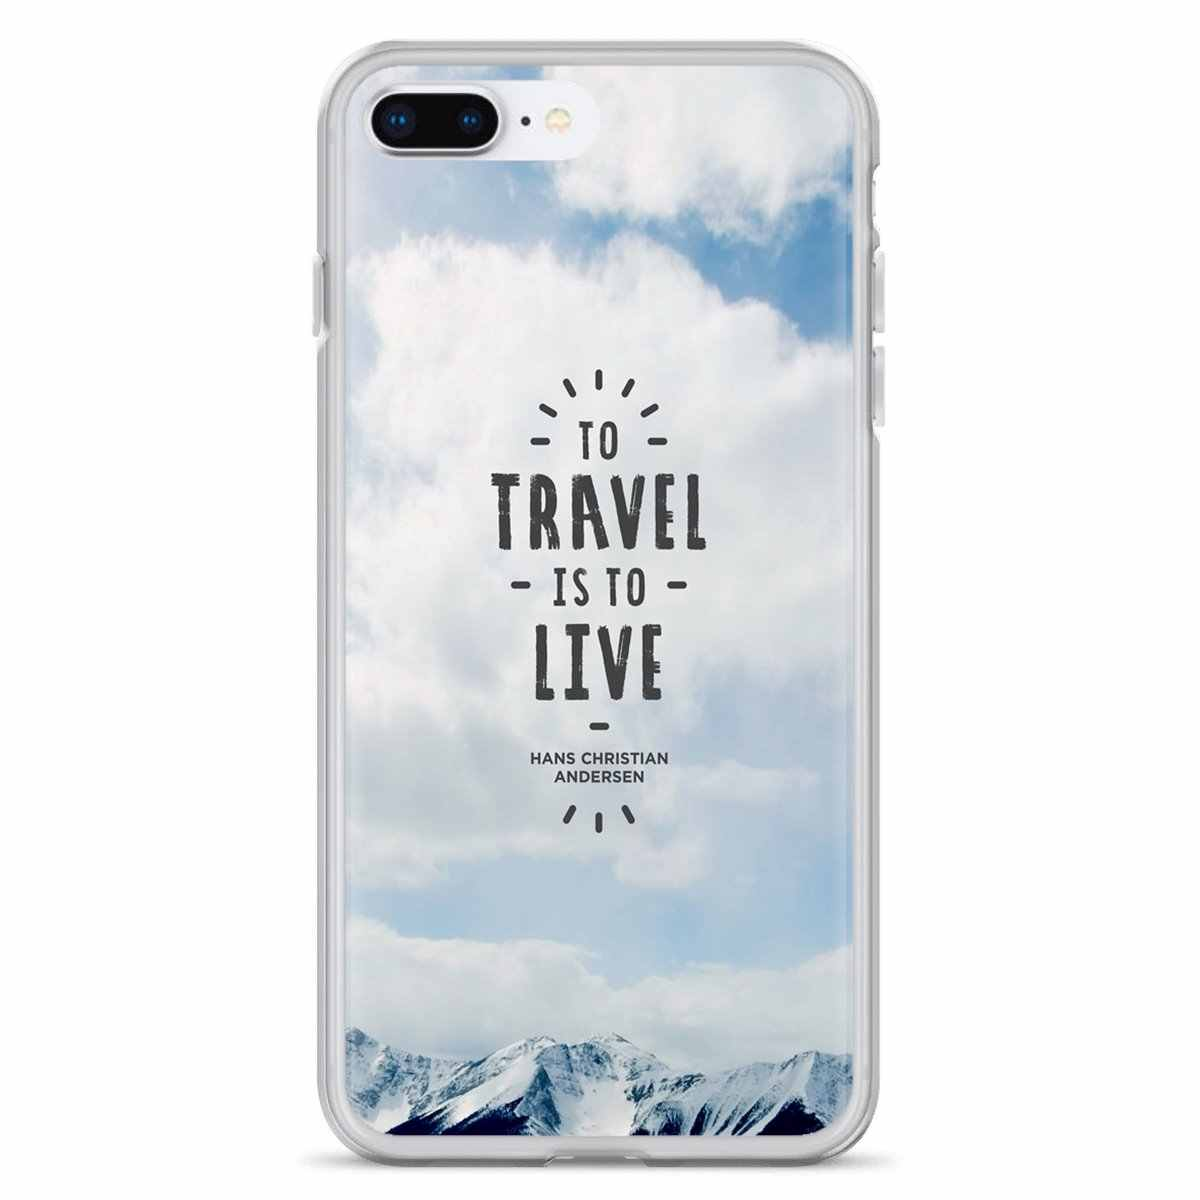 Travel Wallpaper For Iphone 11 Pro 4 4s 5 5s Se 5c 6 6s 7 8 X Xr Xs Plus Max For Ipod Touch Buy Silicone Phone Case Aliexpress